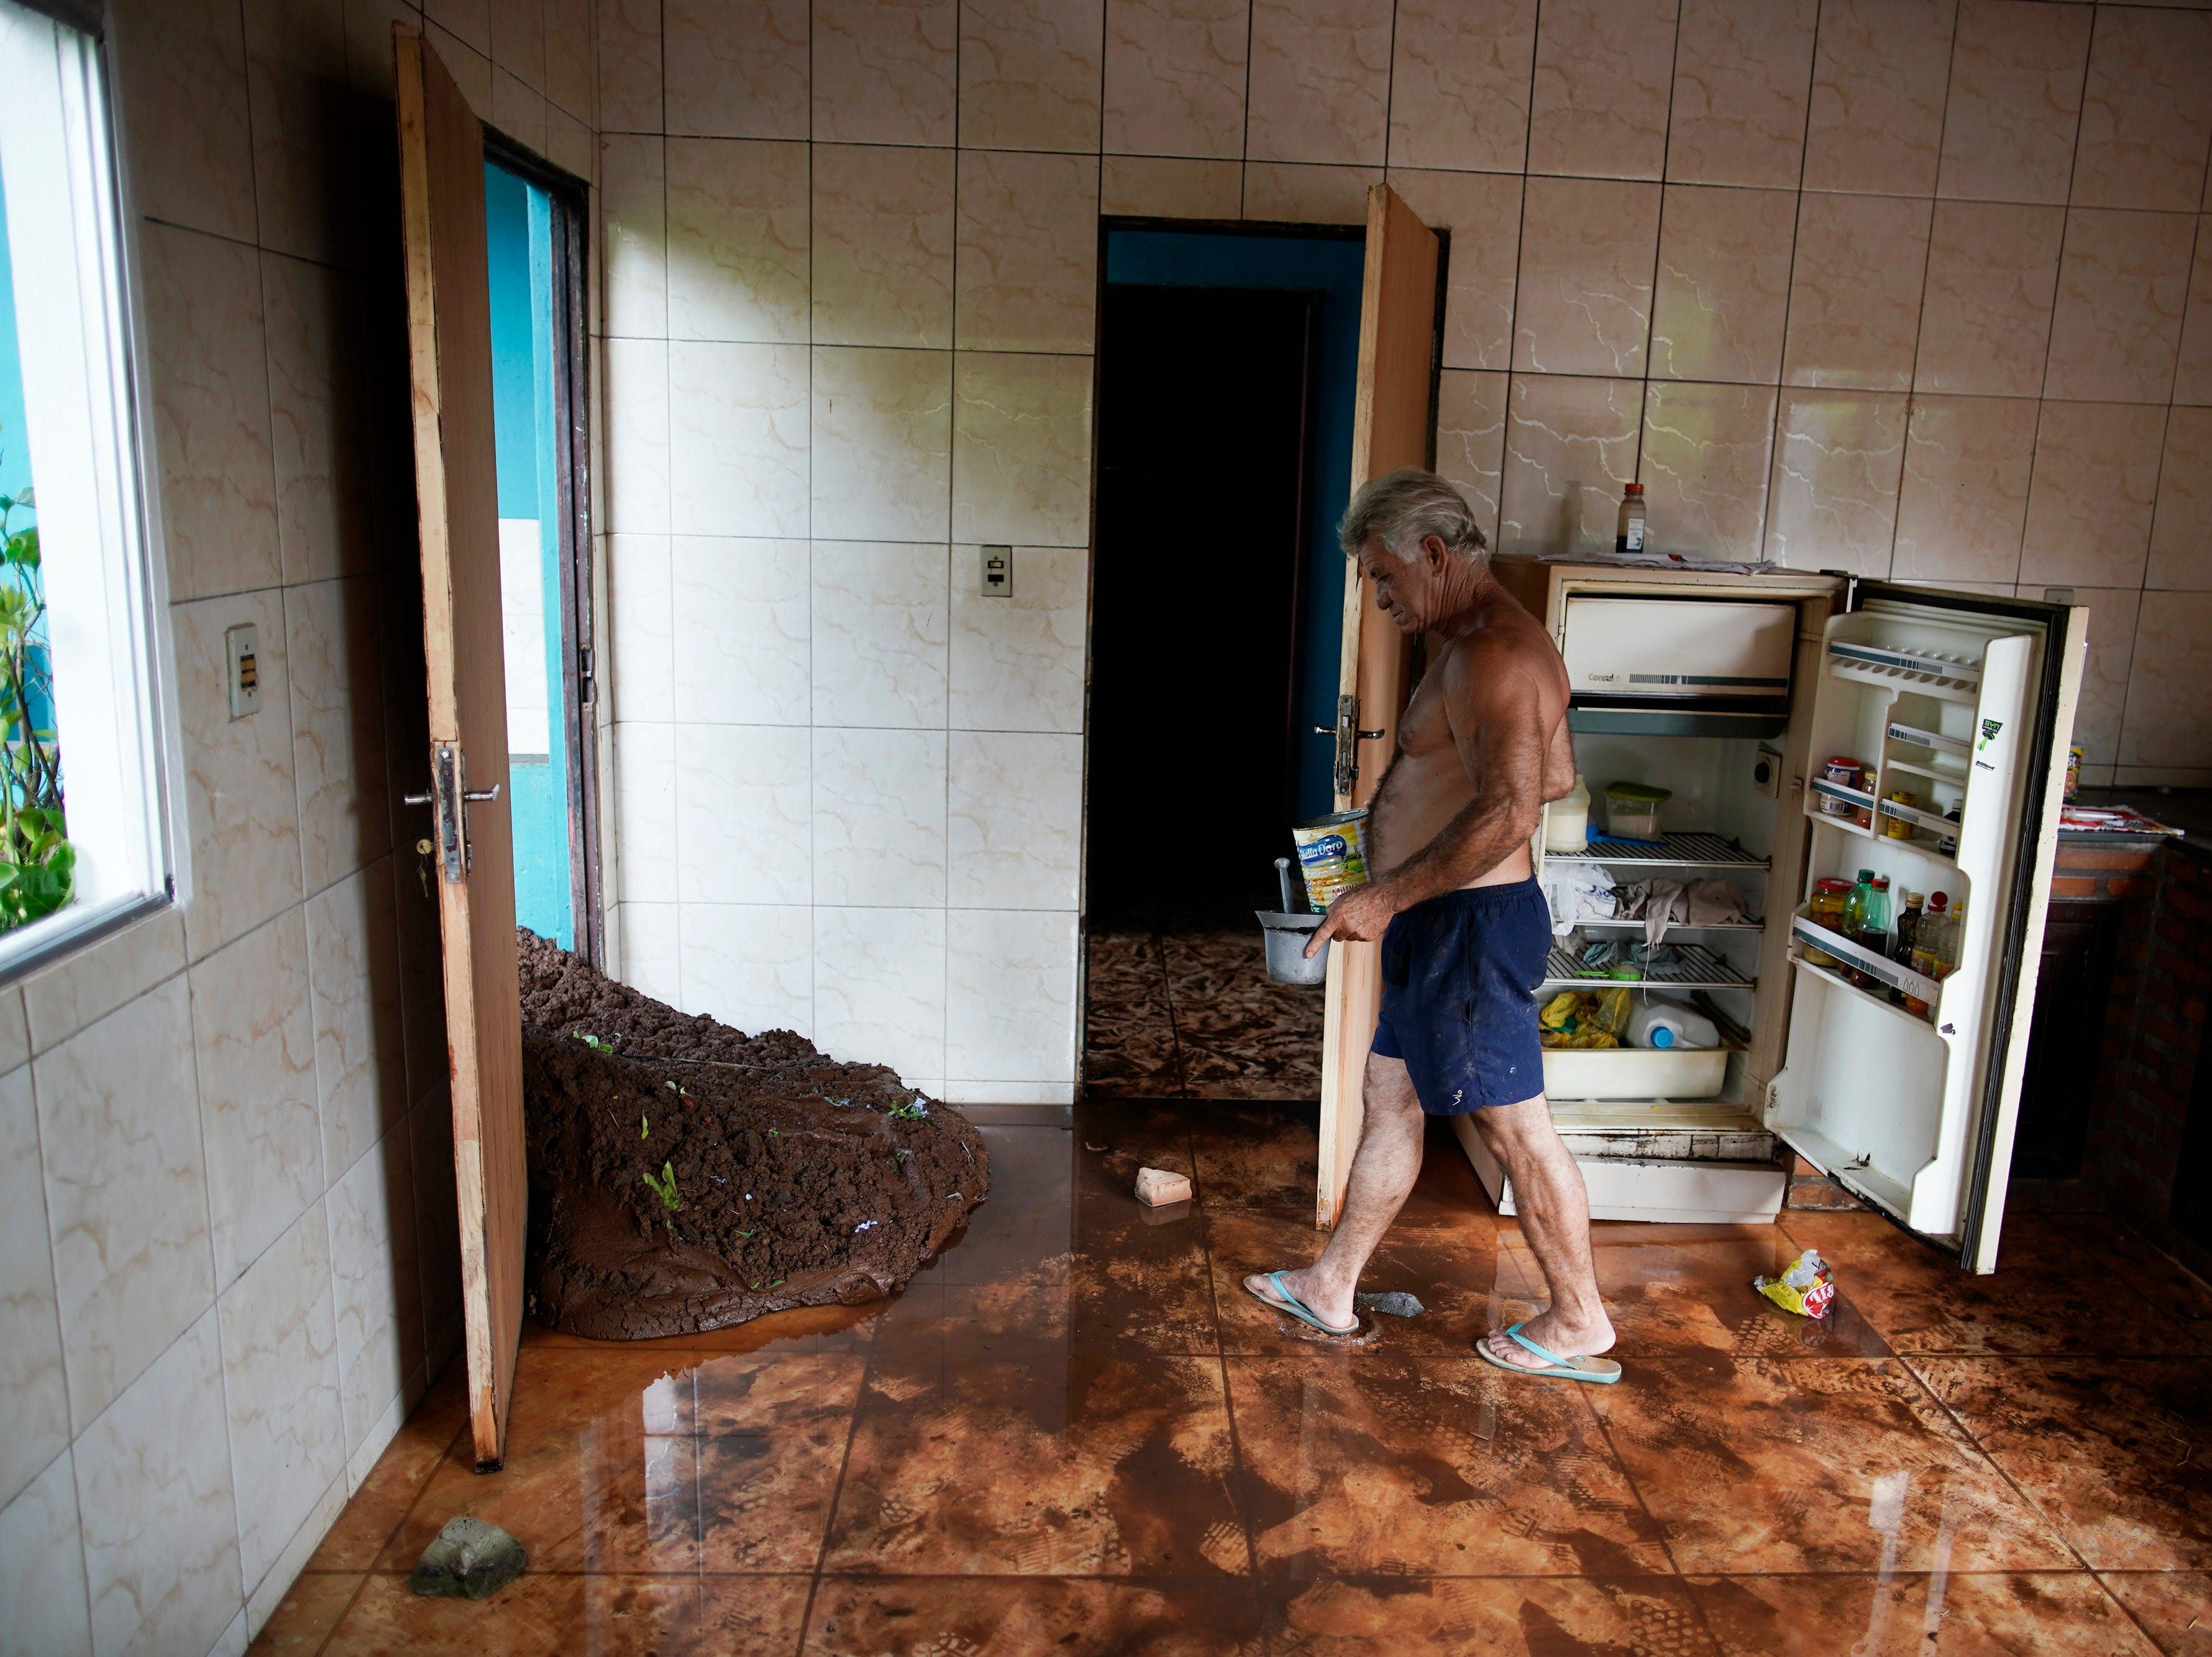 Darcy Brum walks past mud that entered in the kitchen of the house of his father-in-law near Brumadinho, Brazil, Saturday, Jan. 26, 2019. The dam that held back mining waste collapsed, inundating a nearby community in reddish-brown sludge, killing several people and leaving scores of others missing.